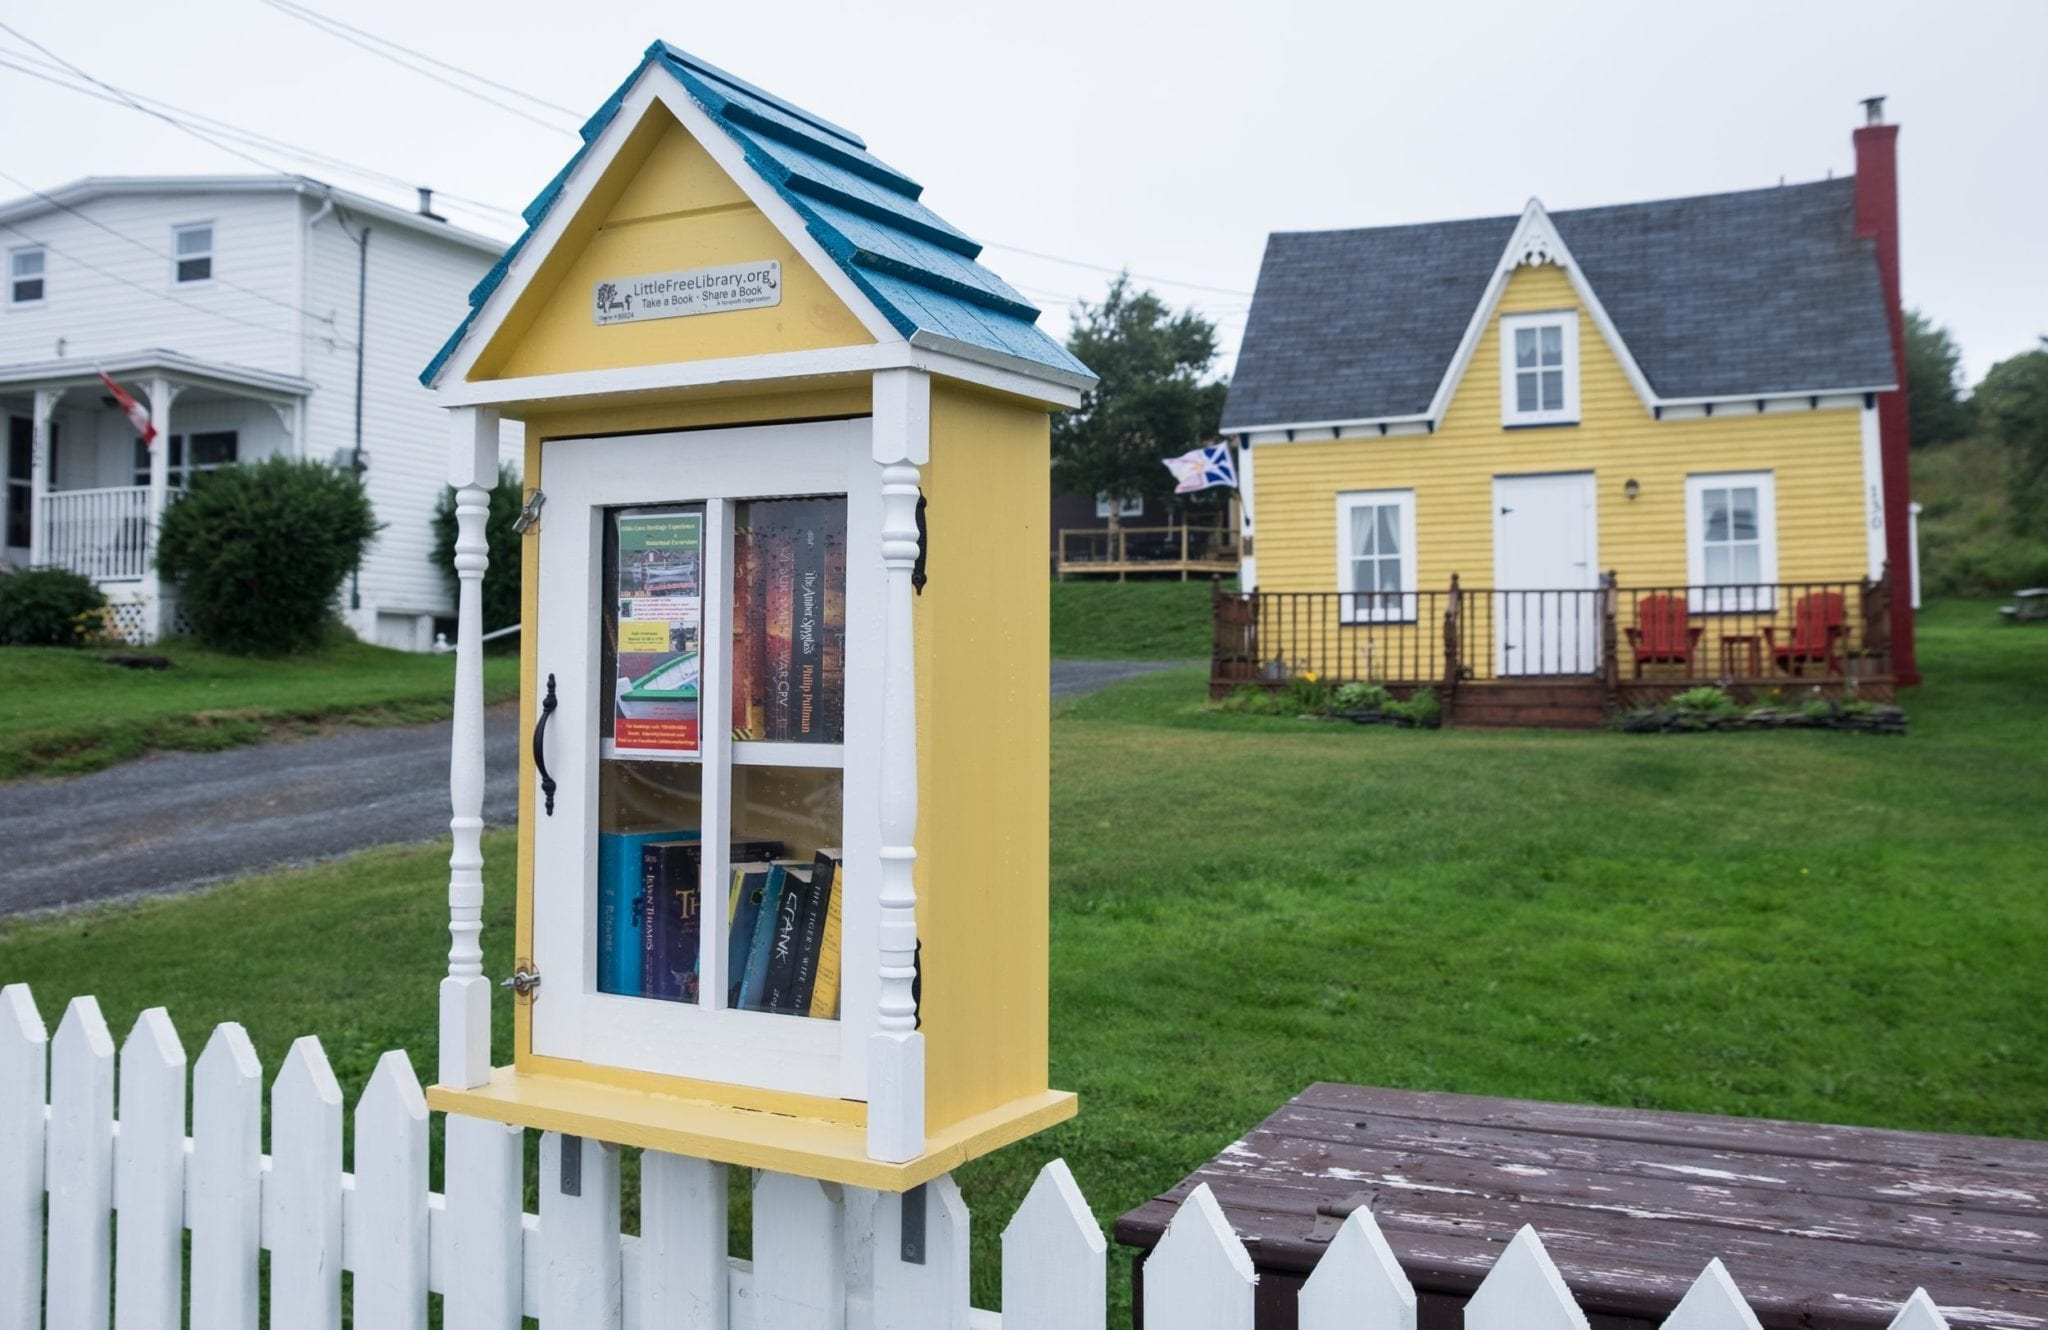 A yellow little library built on a white picket fence with books behind the glass door. In the background, a matching yellow cottage.